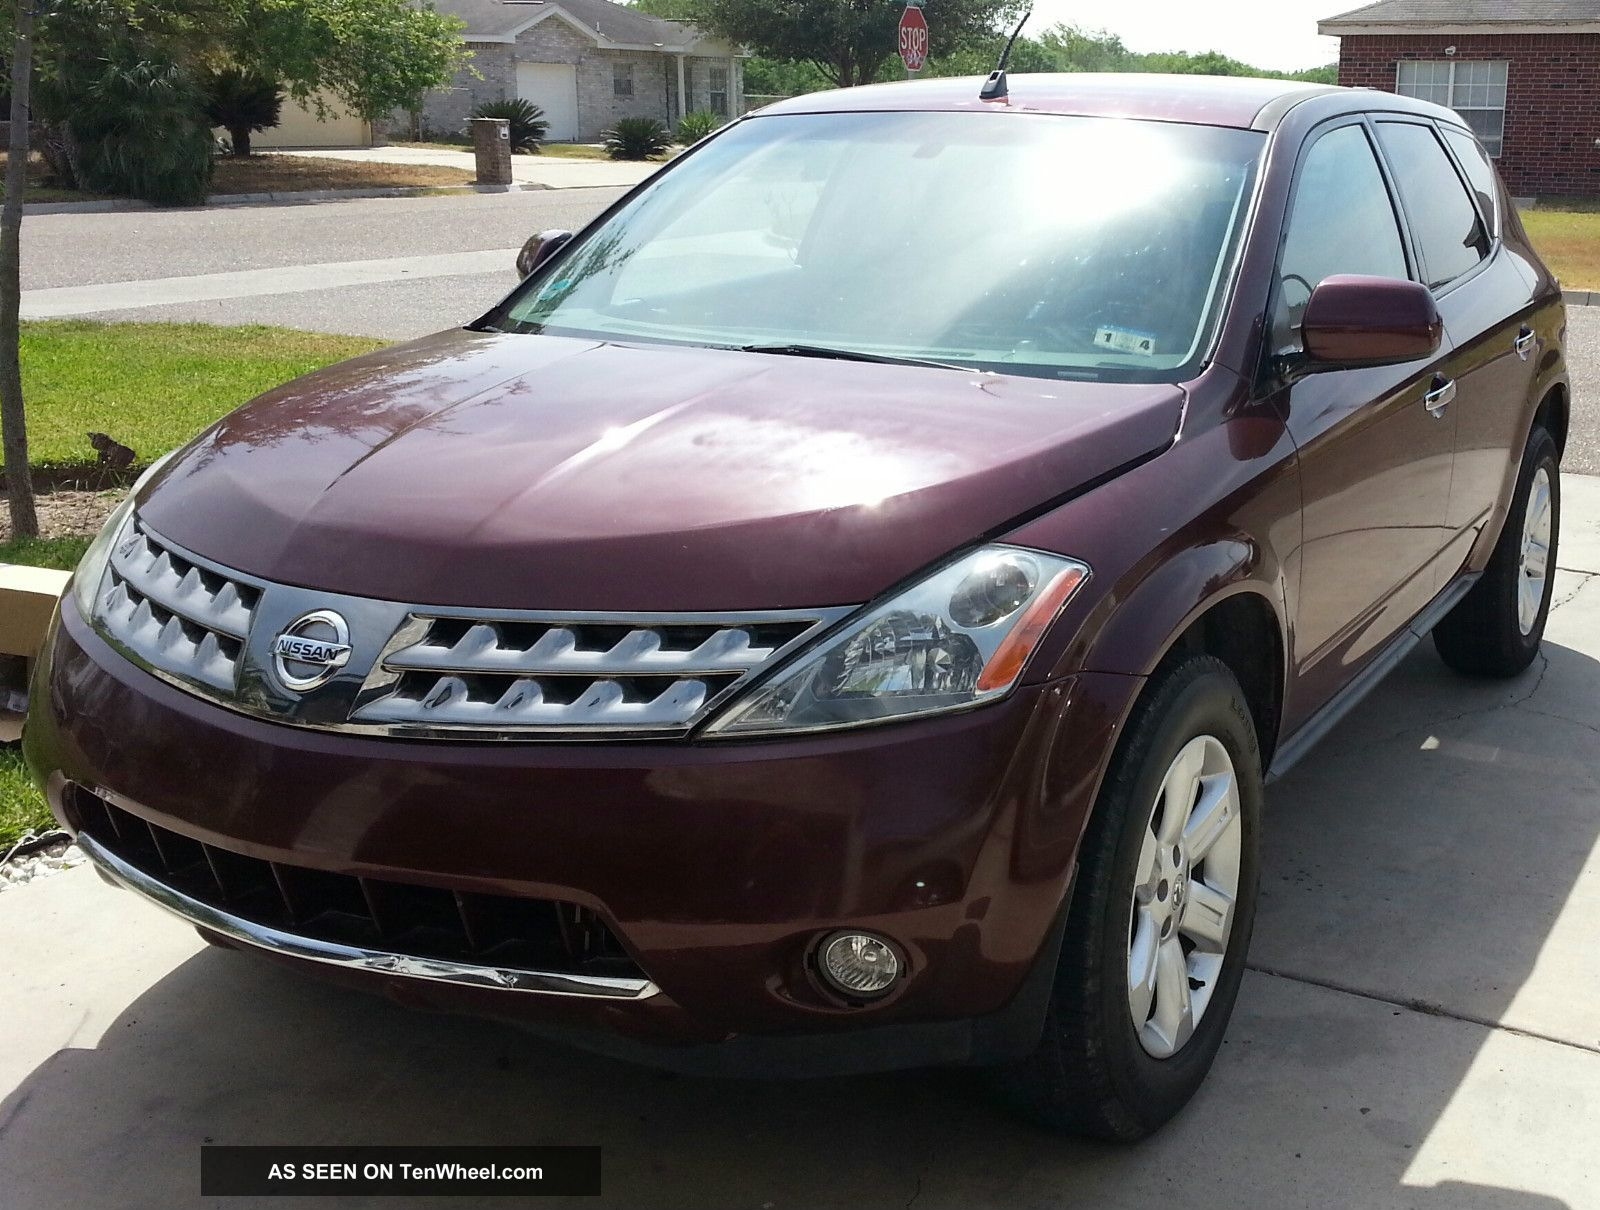 2006 nissan murano s awd title maroon. Black Bedroom Furniture Sets. Home Design Ideas